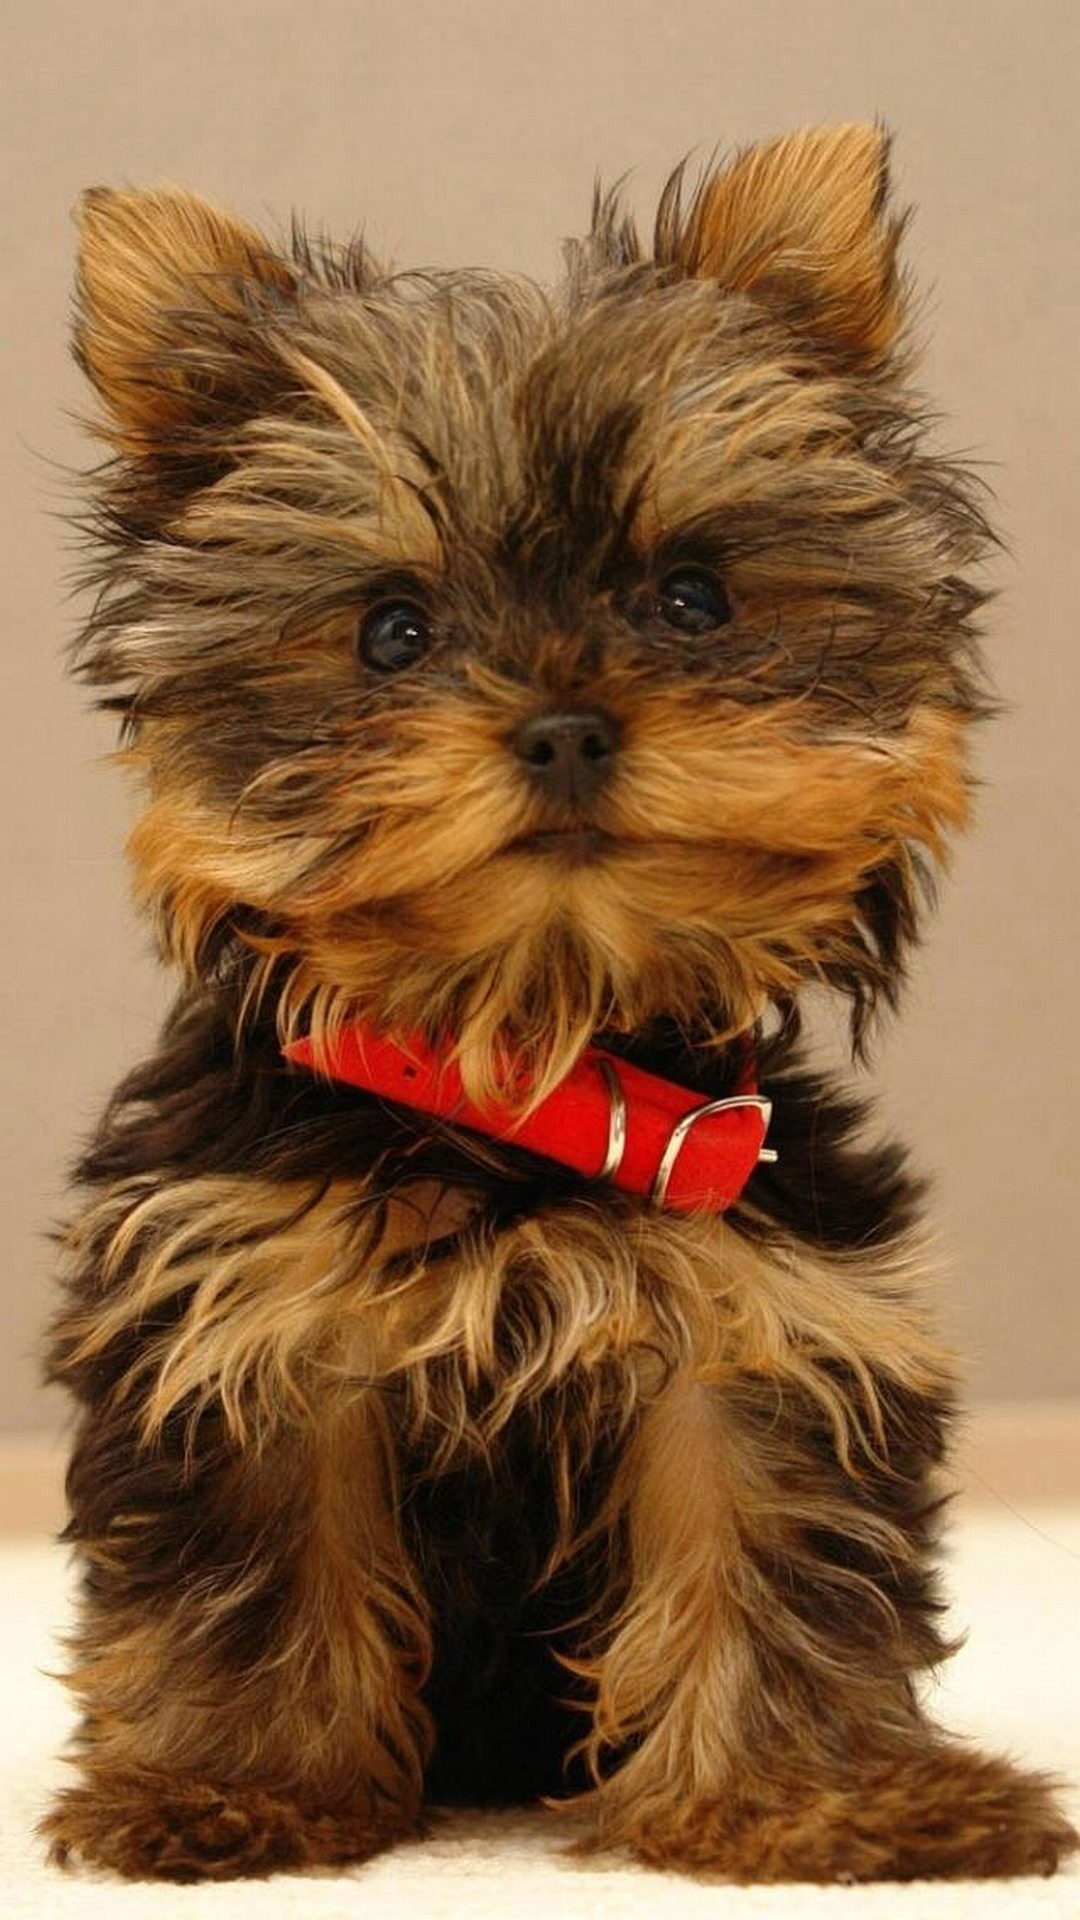 1080x1920 Yorkshire Terrier puppy - High quality htc one wallpapers and abstract  backgrounds designed by the best